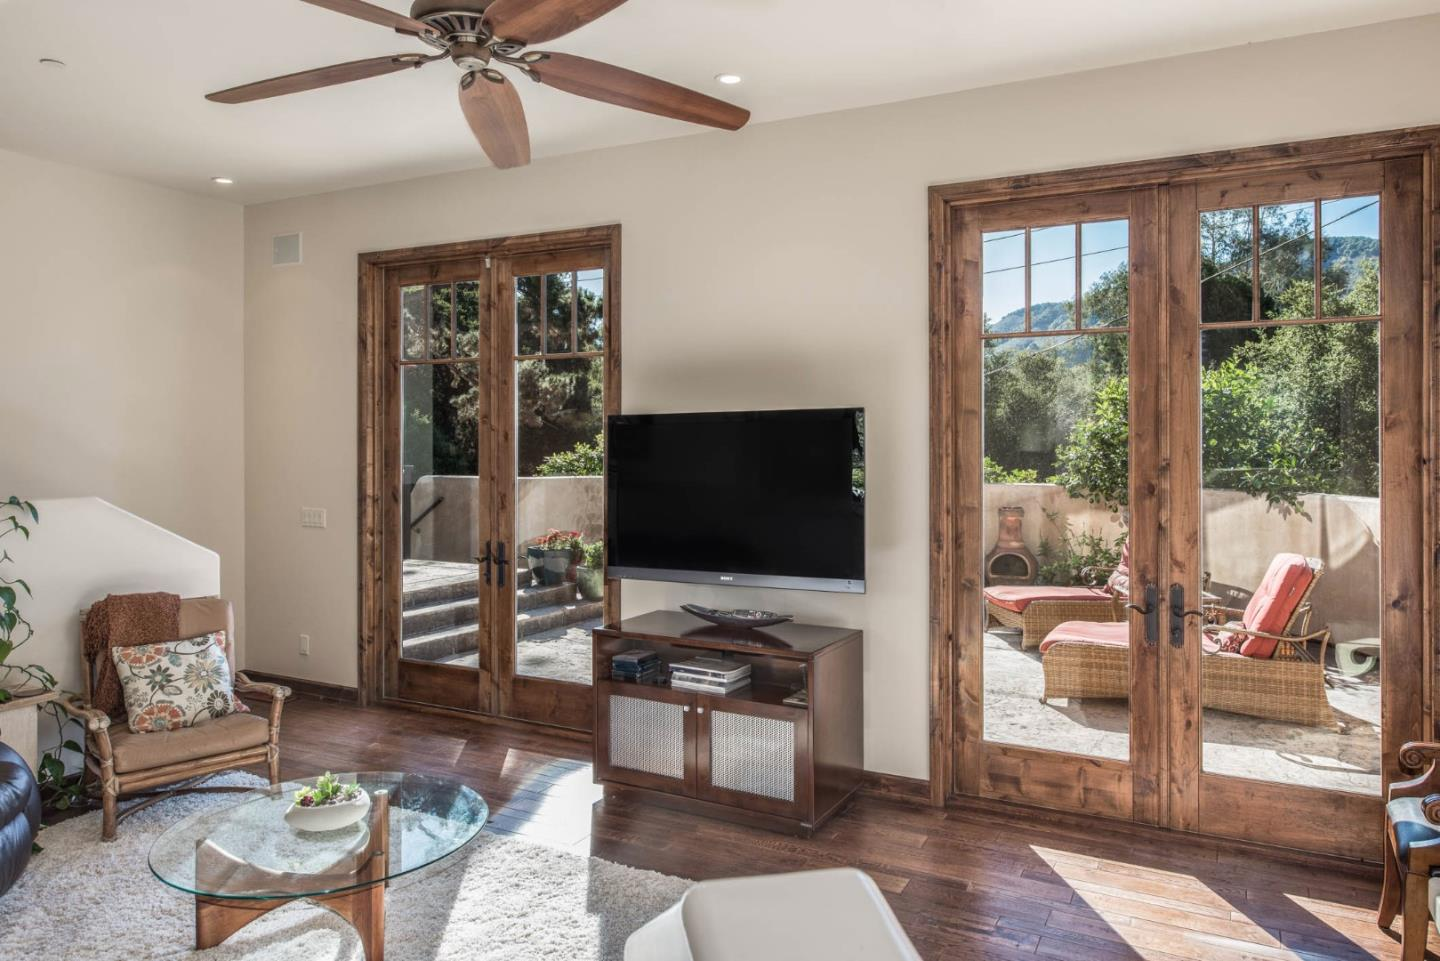 Additional photo for property listing at 8215 El Camino Estrada  CARMEL VALLEY, CALIFORNIA 93923